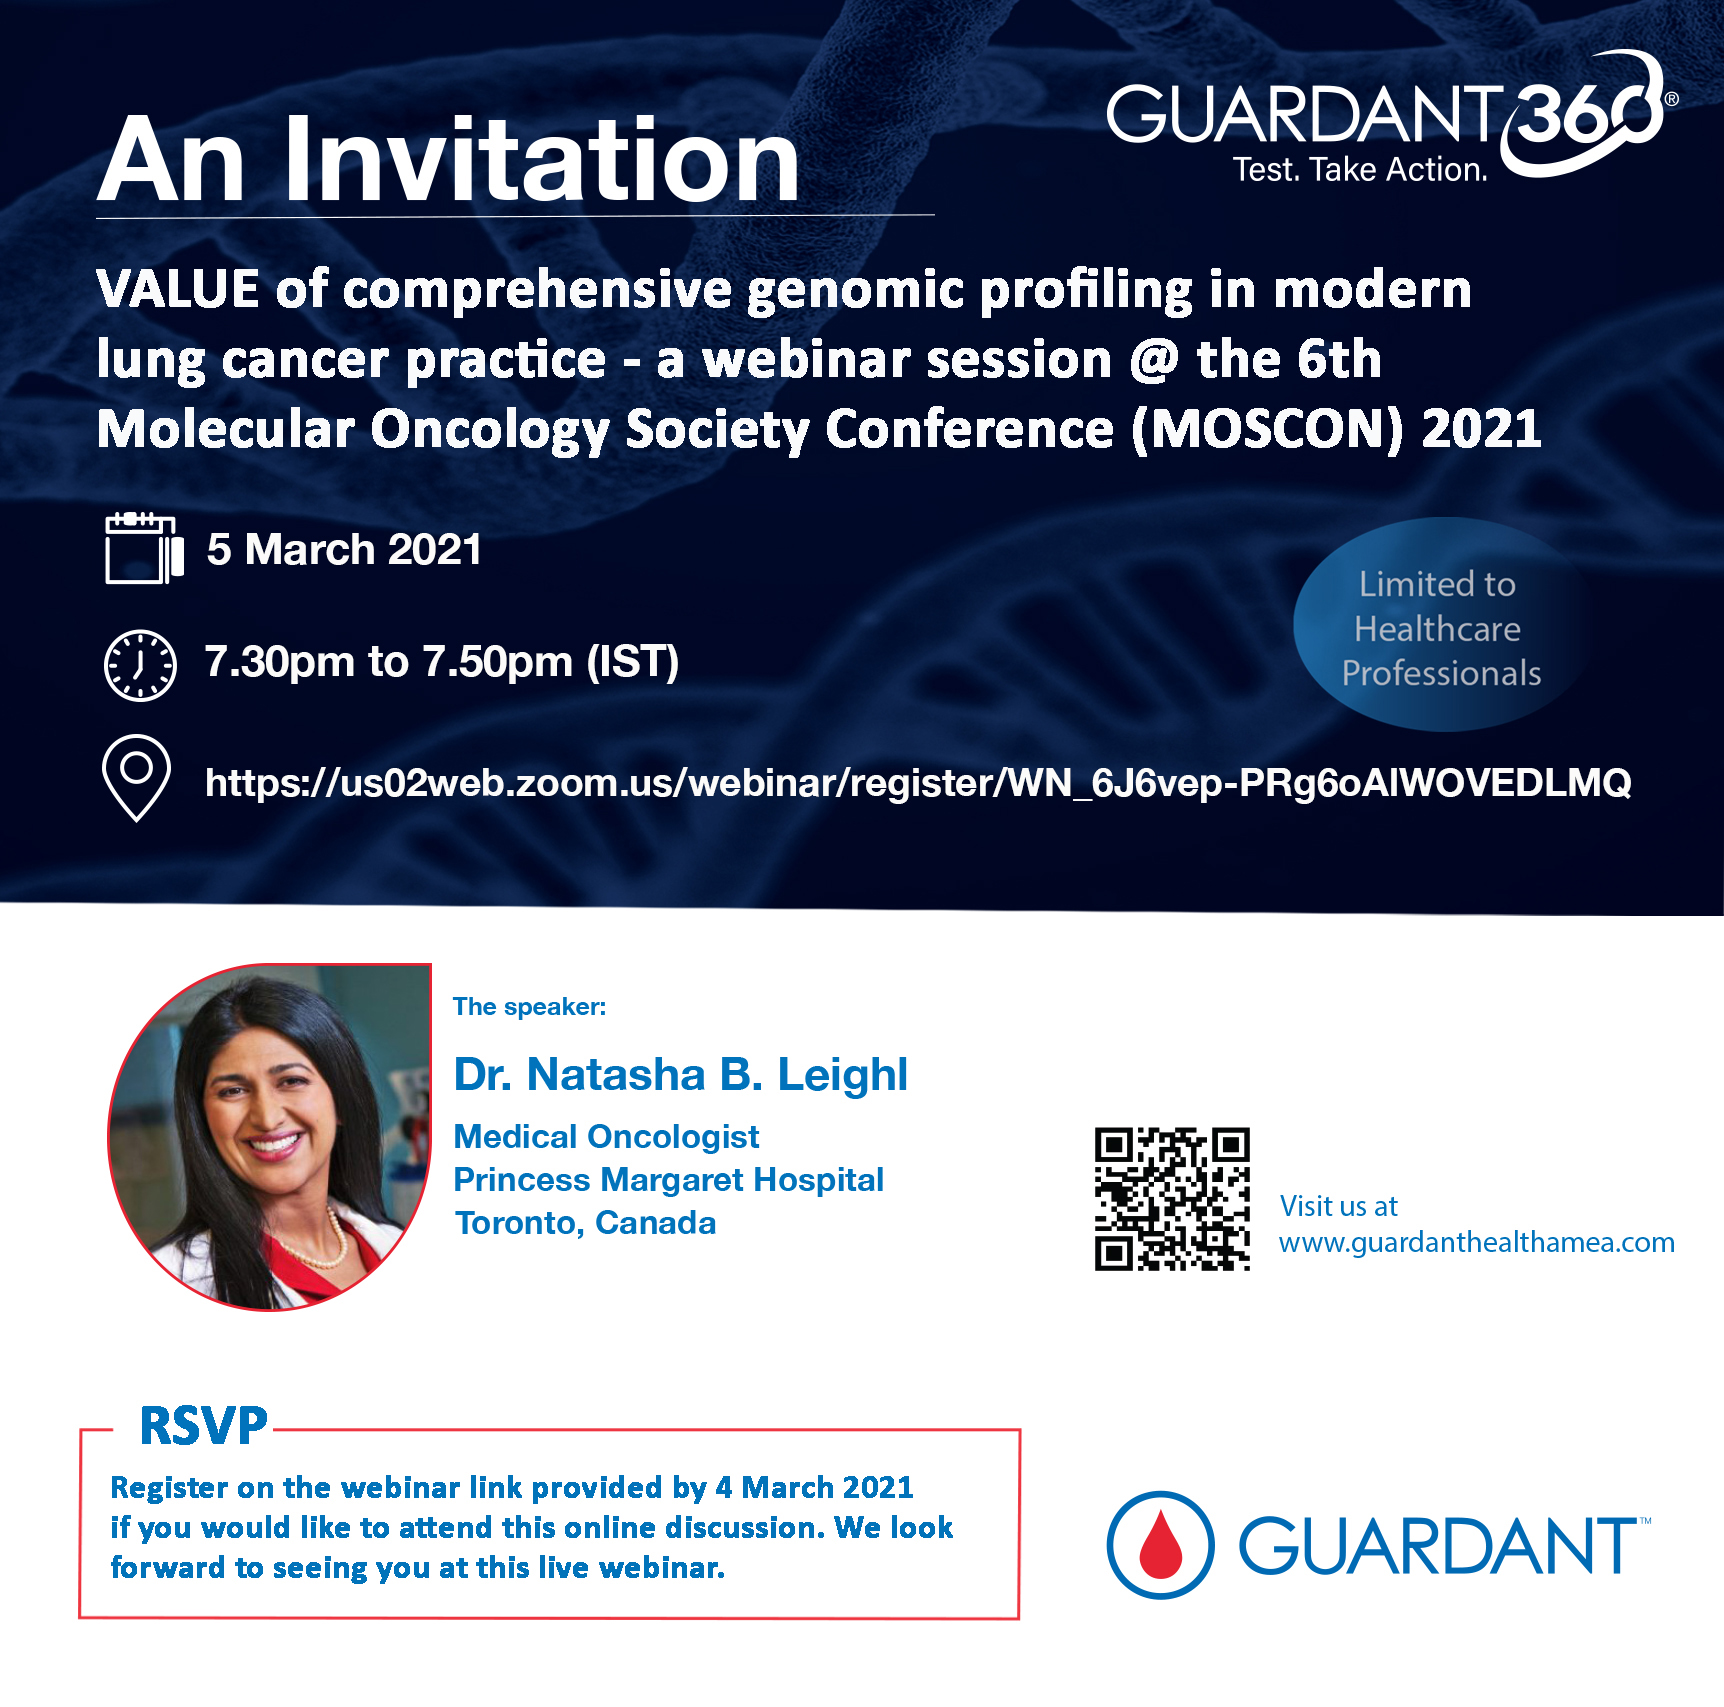 Value of Comprehensive Genomic Profiling in Modern Lung Cancer Practice